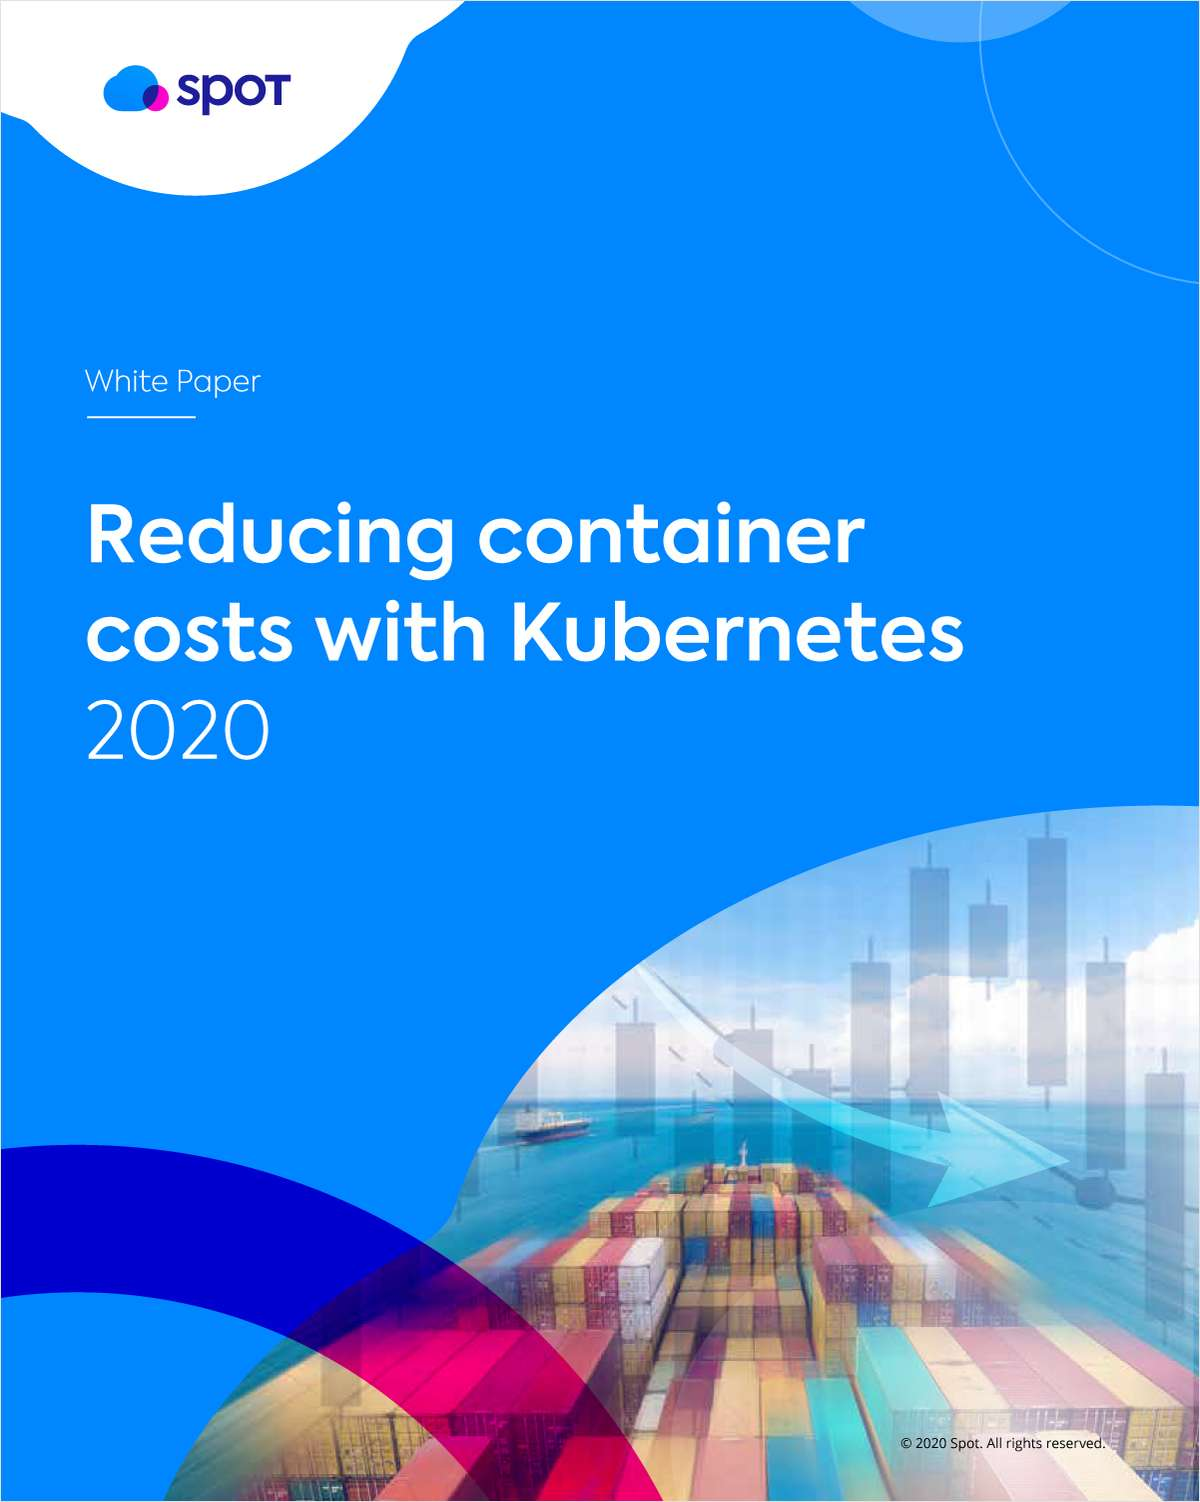 White Paper: Reducing Container Costs with Kubernetes